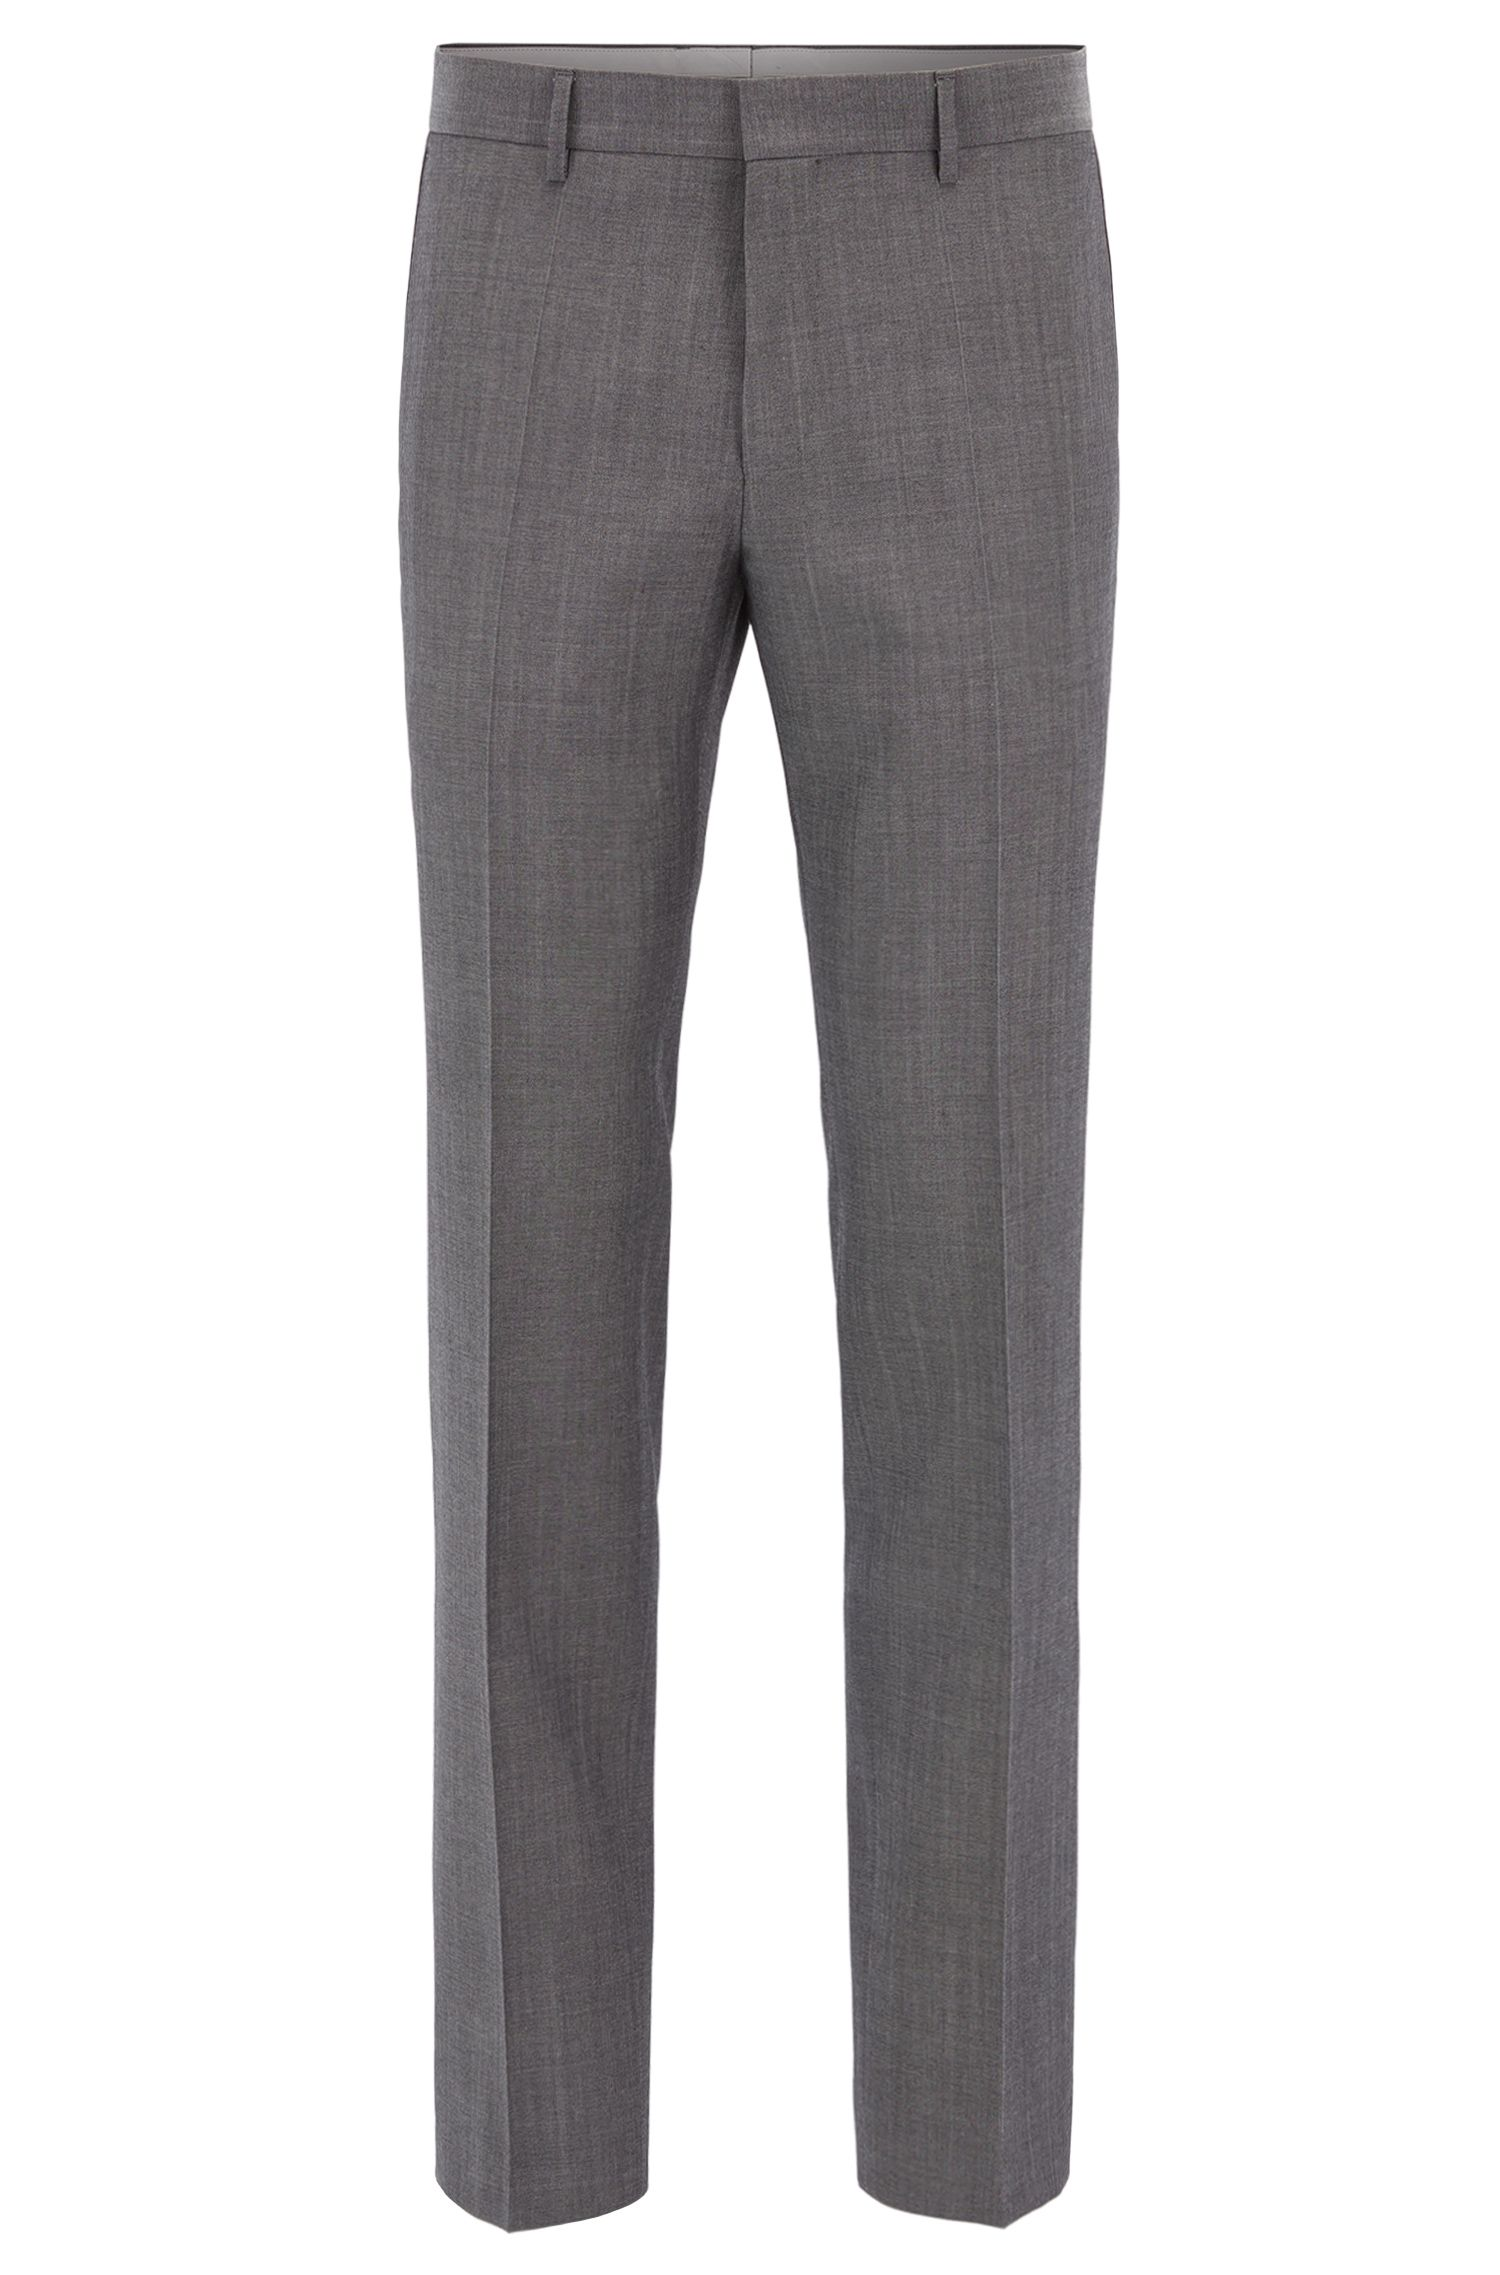 Heather Virgin Wool Dress Pant, Slim Fit | Giro, Grey